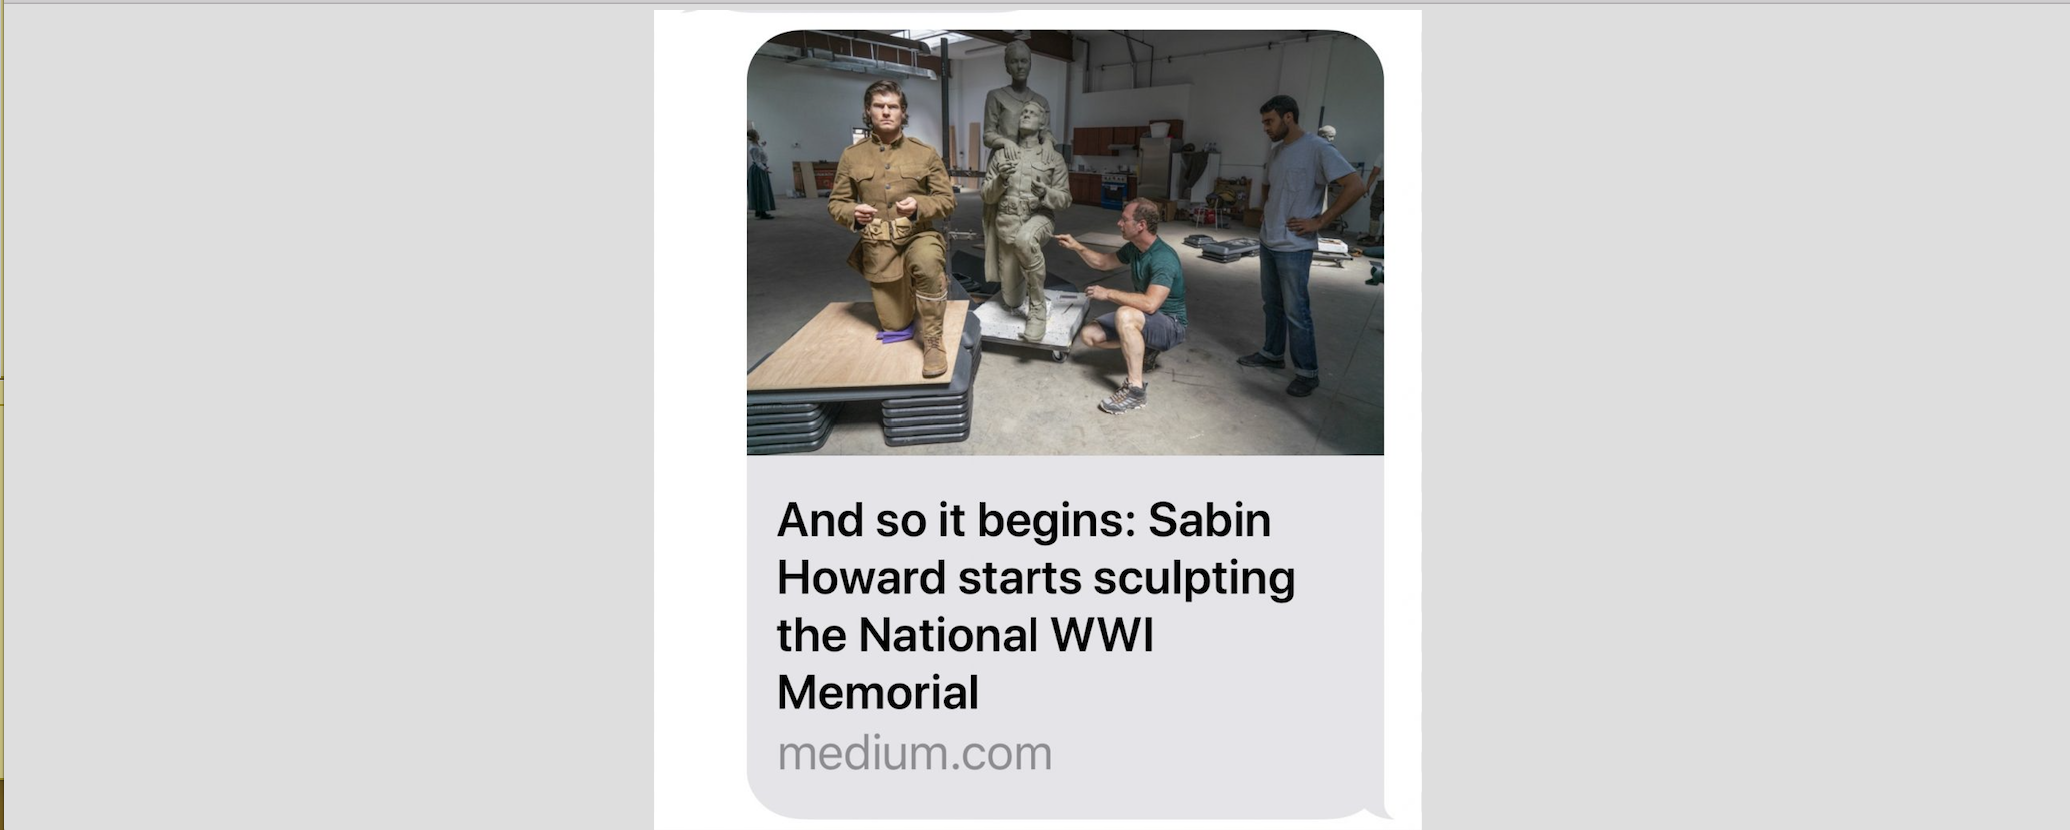 Medium Article & YouTube Video about Sabin Starting Sculpting